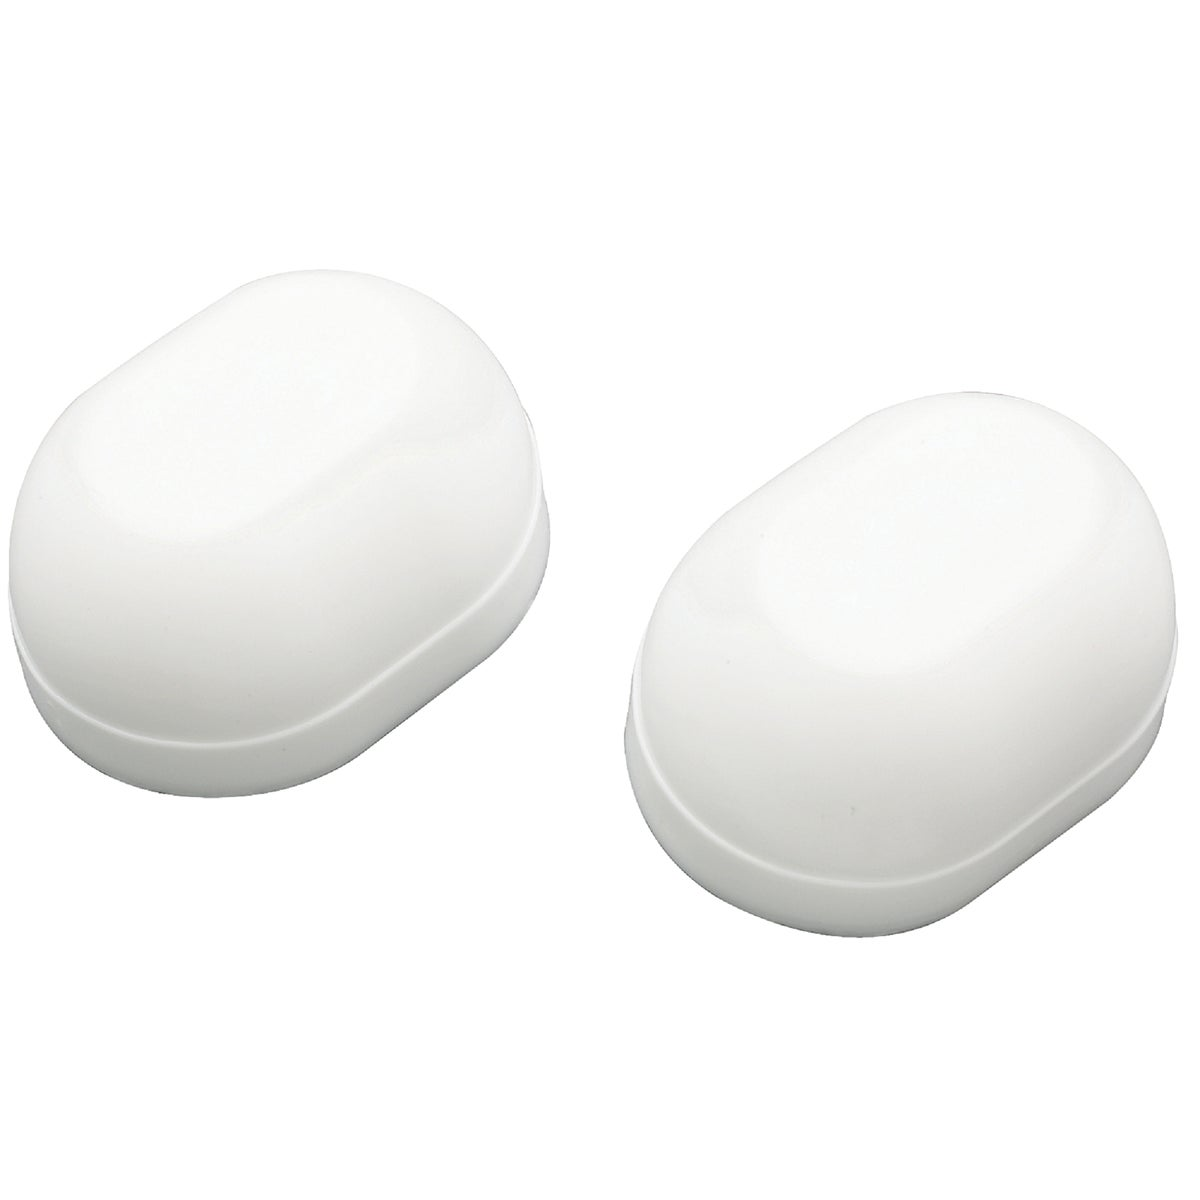 WHT OVAL TOILT BOLT CAPS - 414858 by Plumb Pak/keeney Mfg